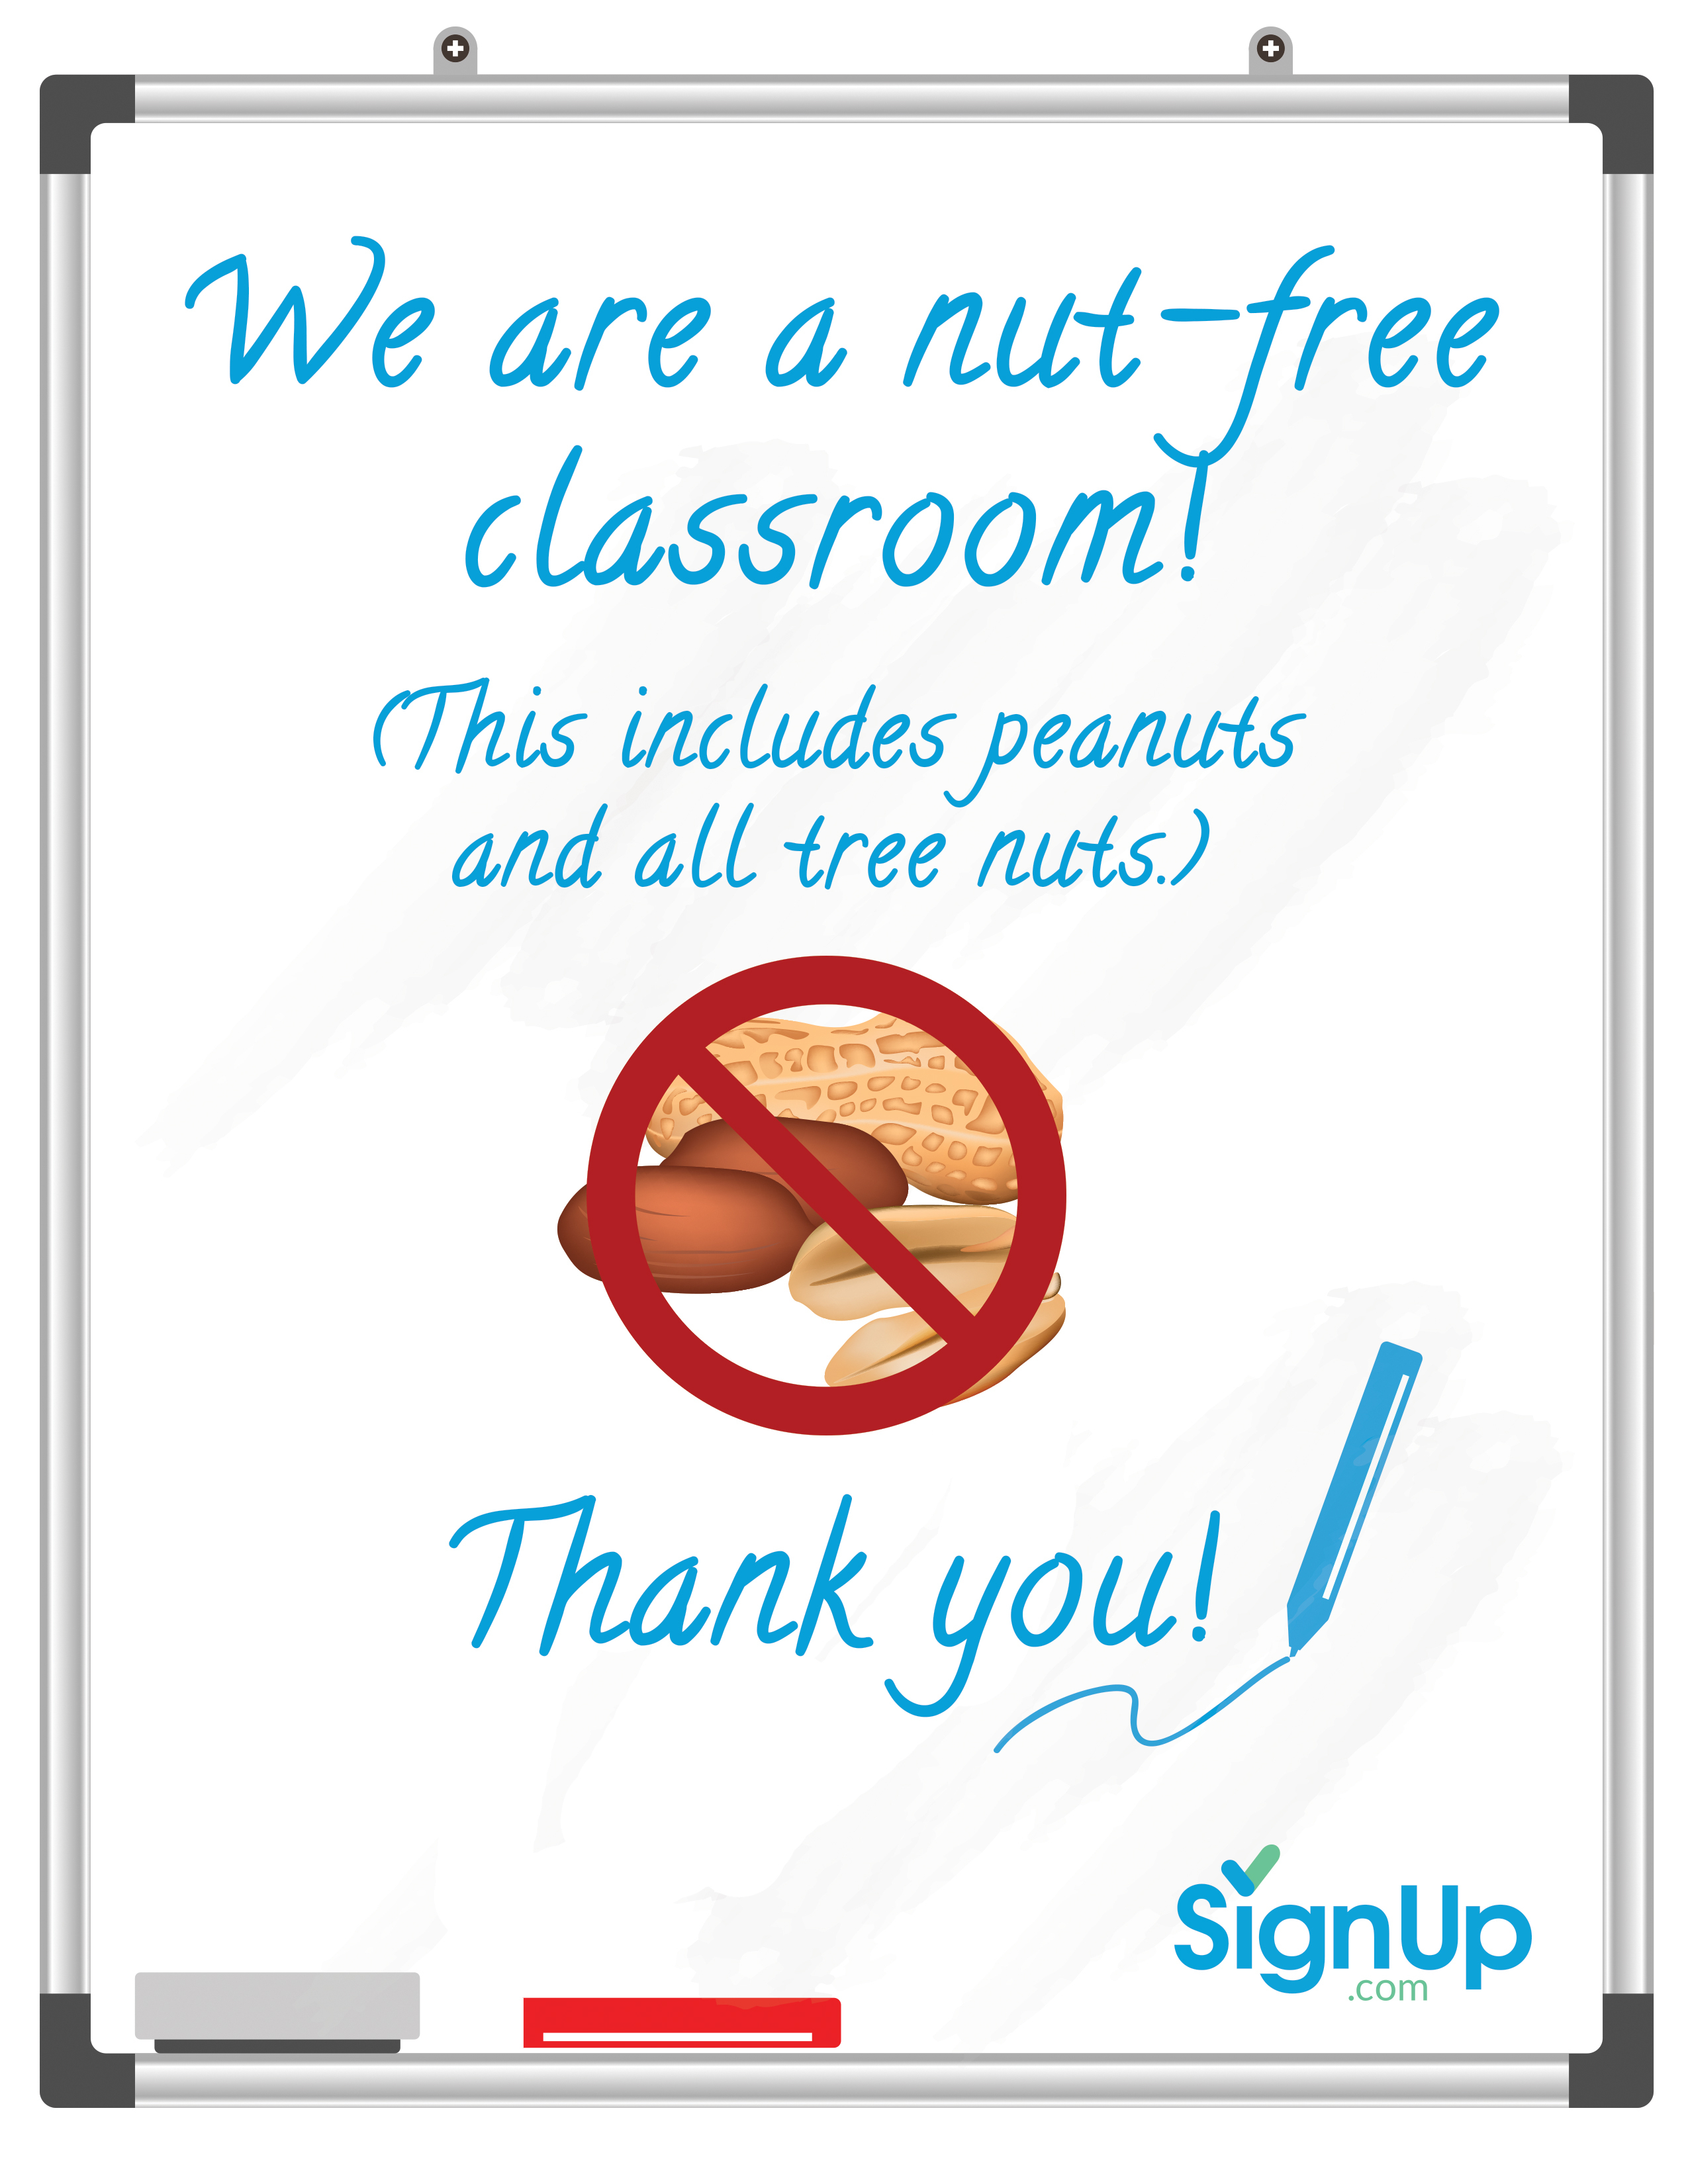 Free Printable Classroom Signs | Signup - Printable Peanut Free Classroom Signs